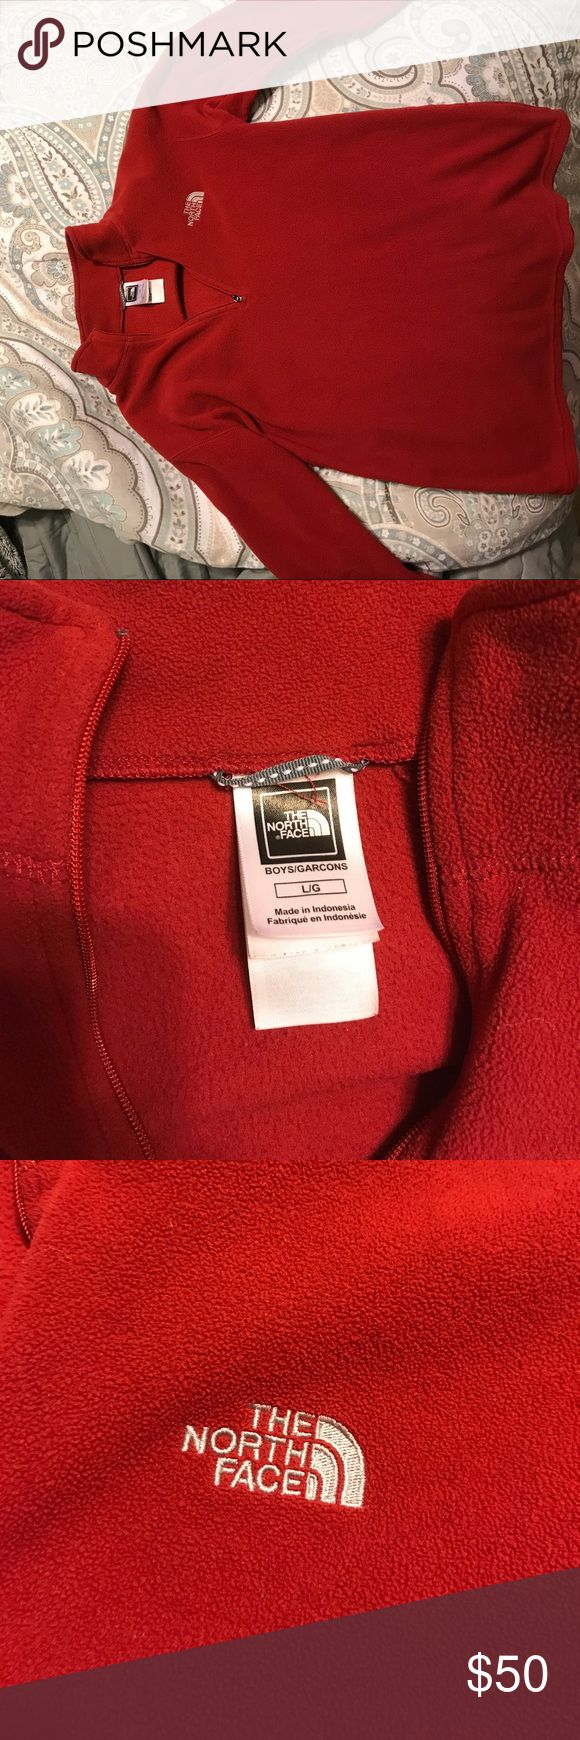 North face fleece pull over It's a boys large which fits like a petite small for girls! North Face Jackets & Coats